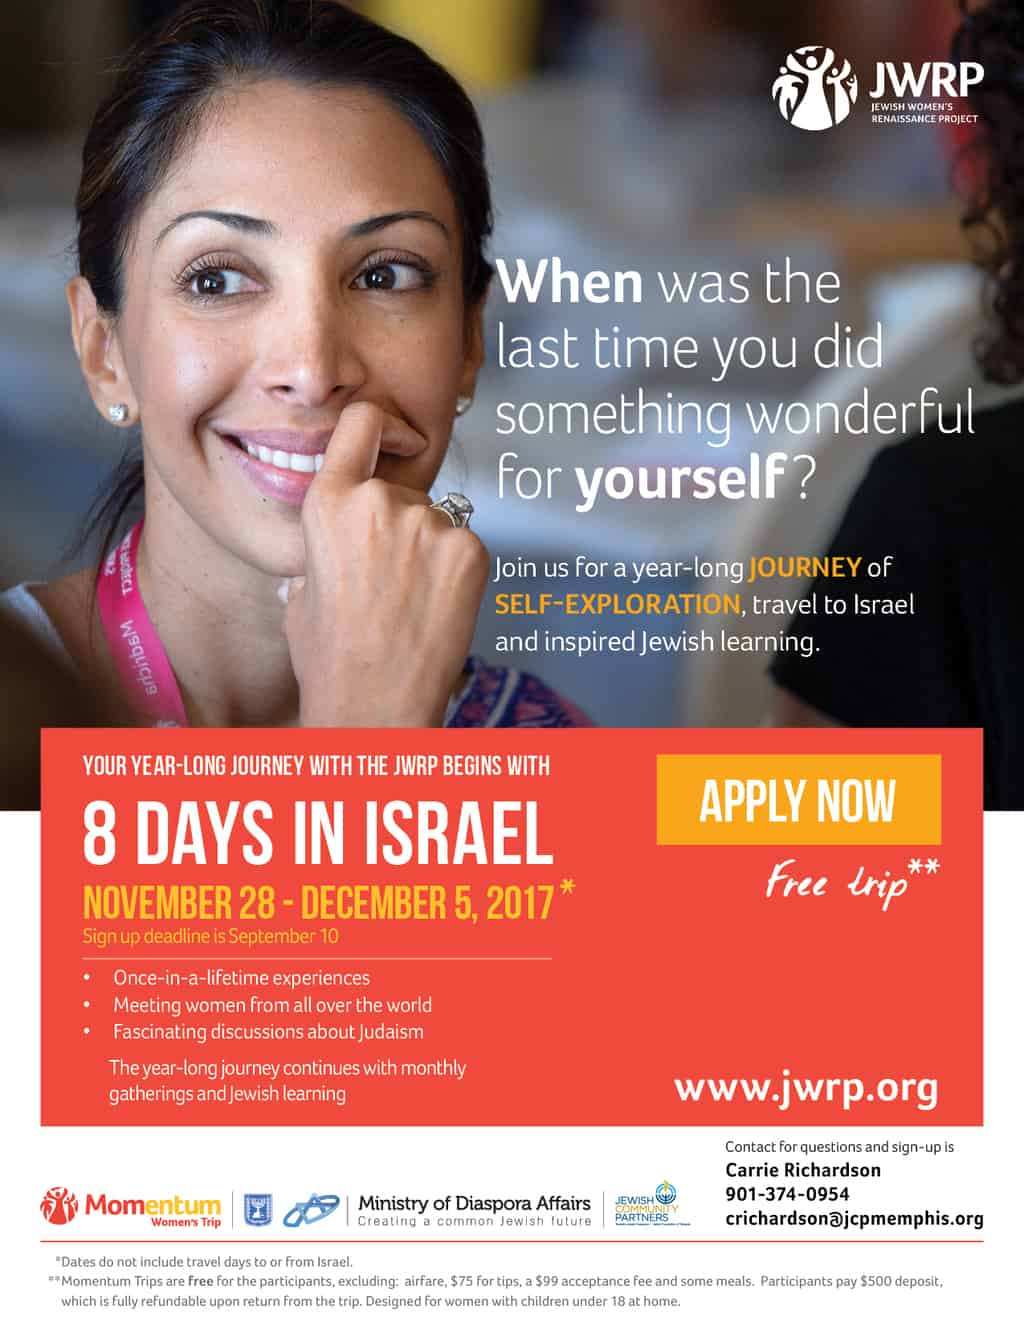 moms-with-kids-under-18-visit-israel-for-the-cost-of-airfare